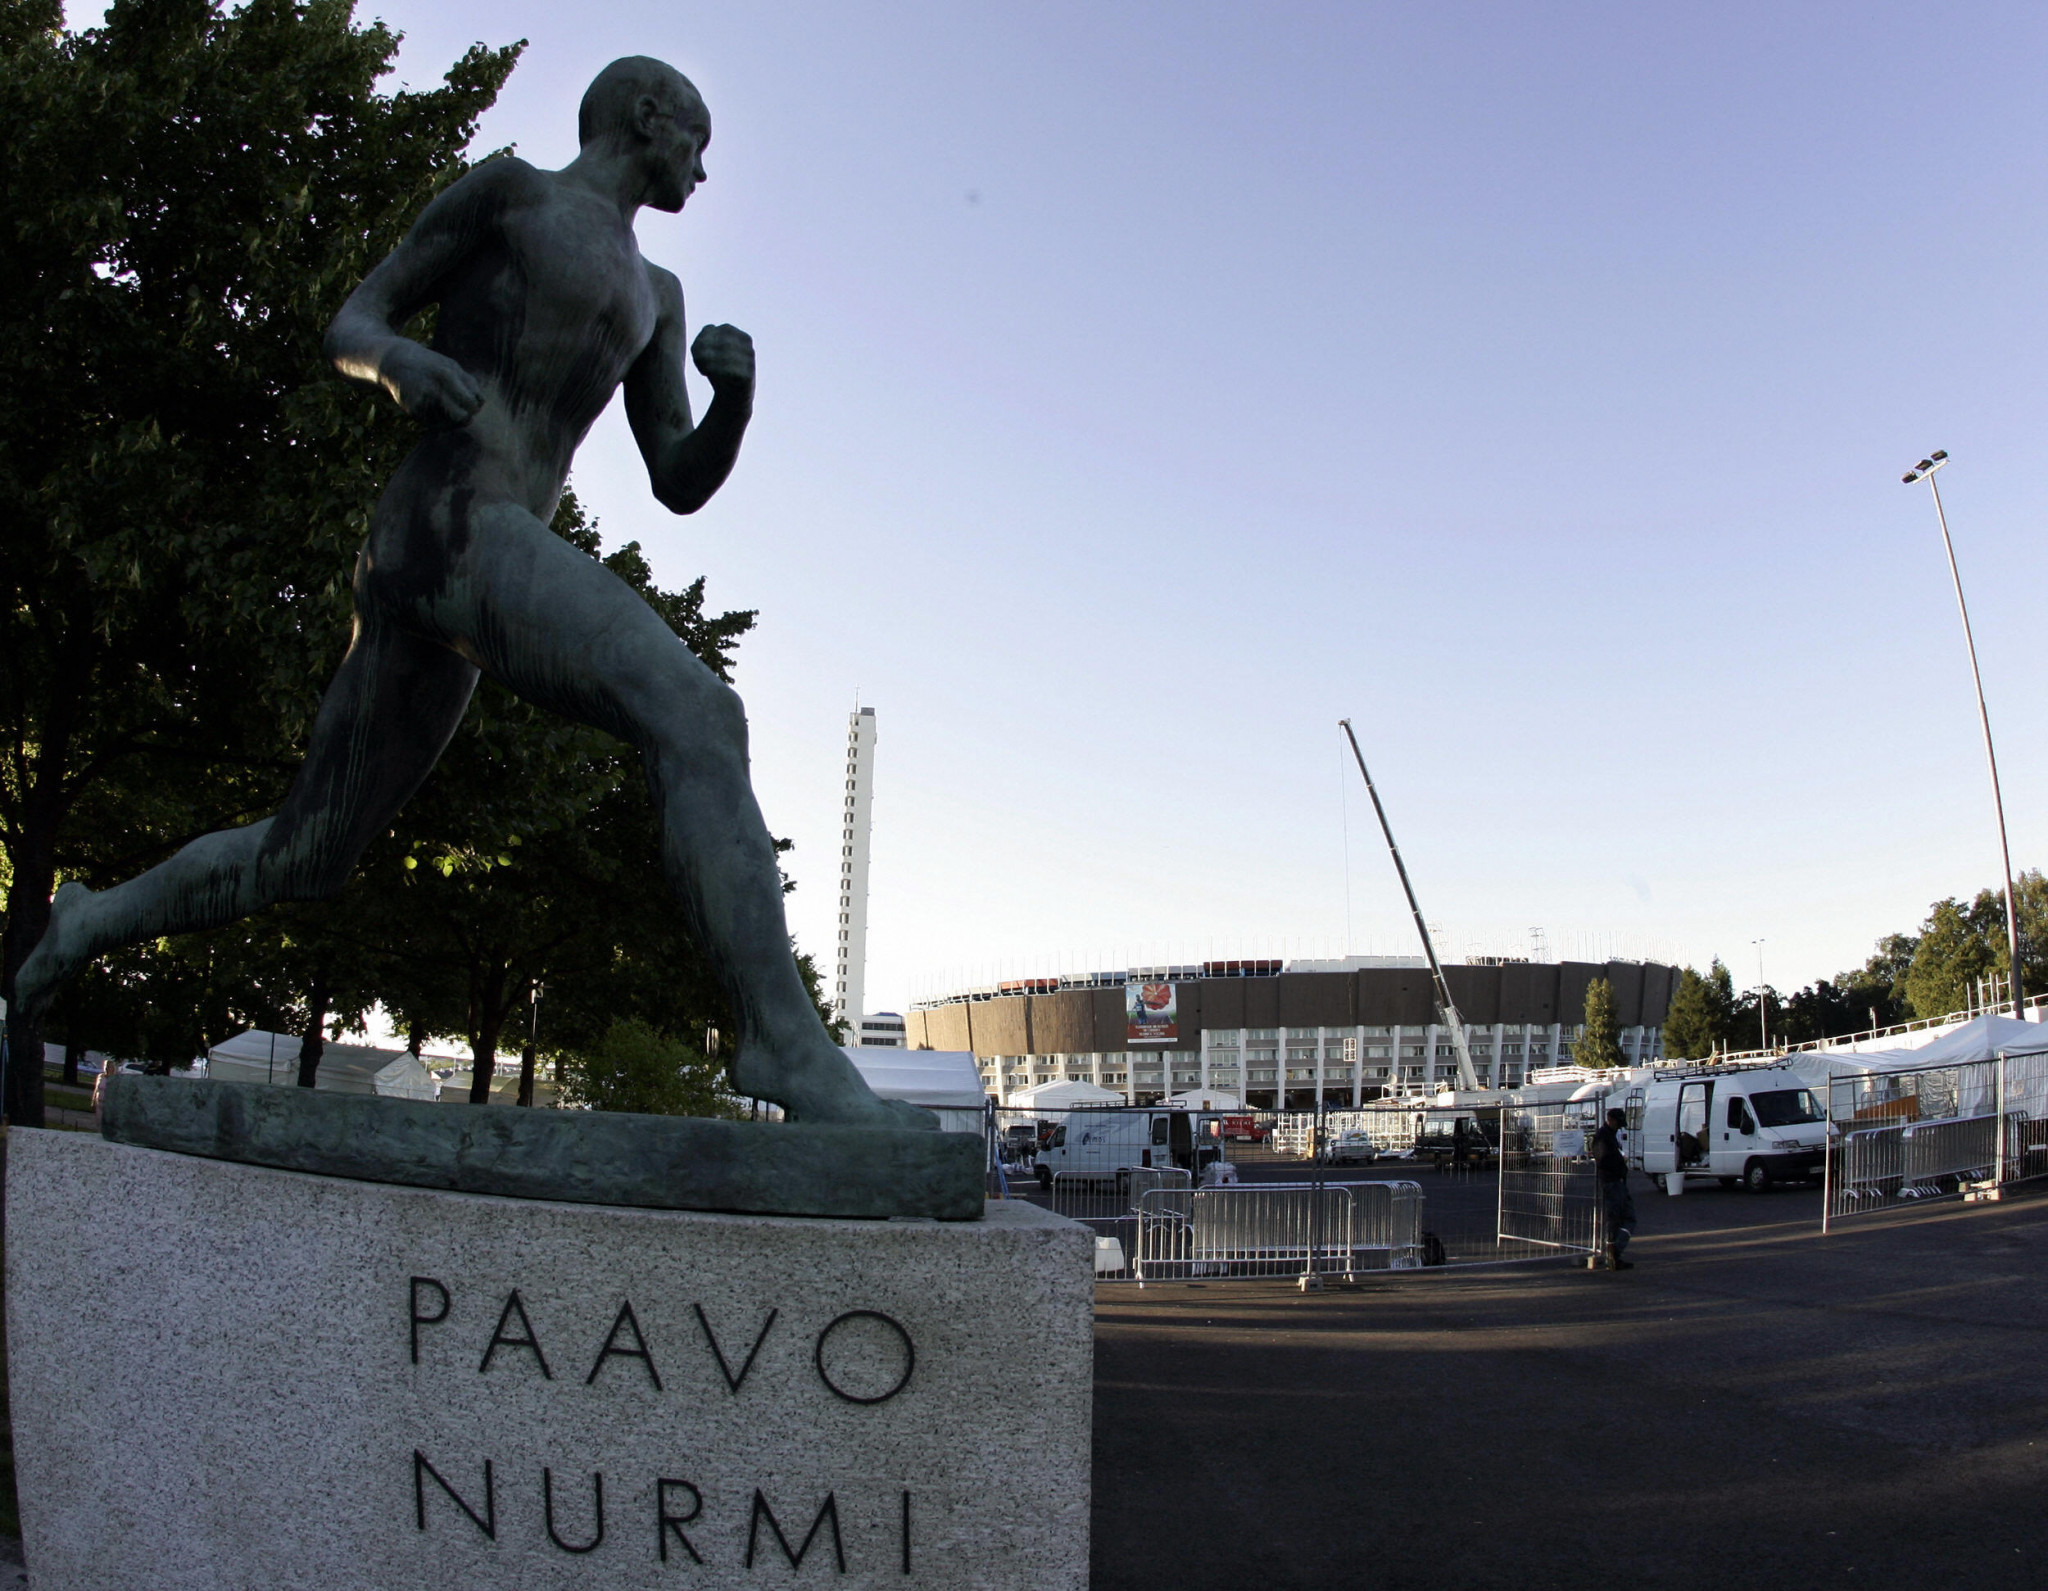 Supporters want a statue of Matti Nykänen to be placed outside the Olympic Stadium in Helsinki alongside the original